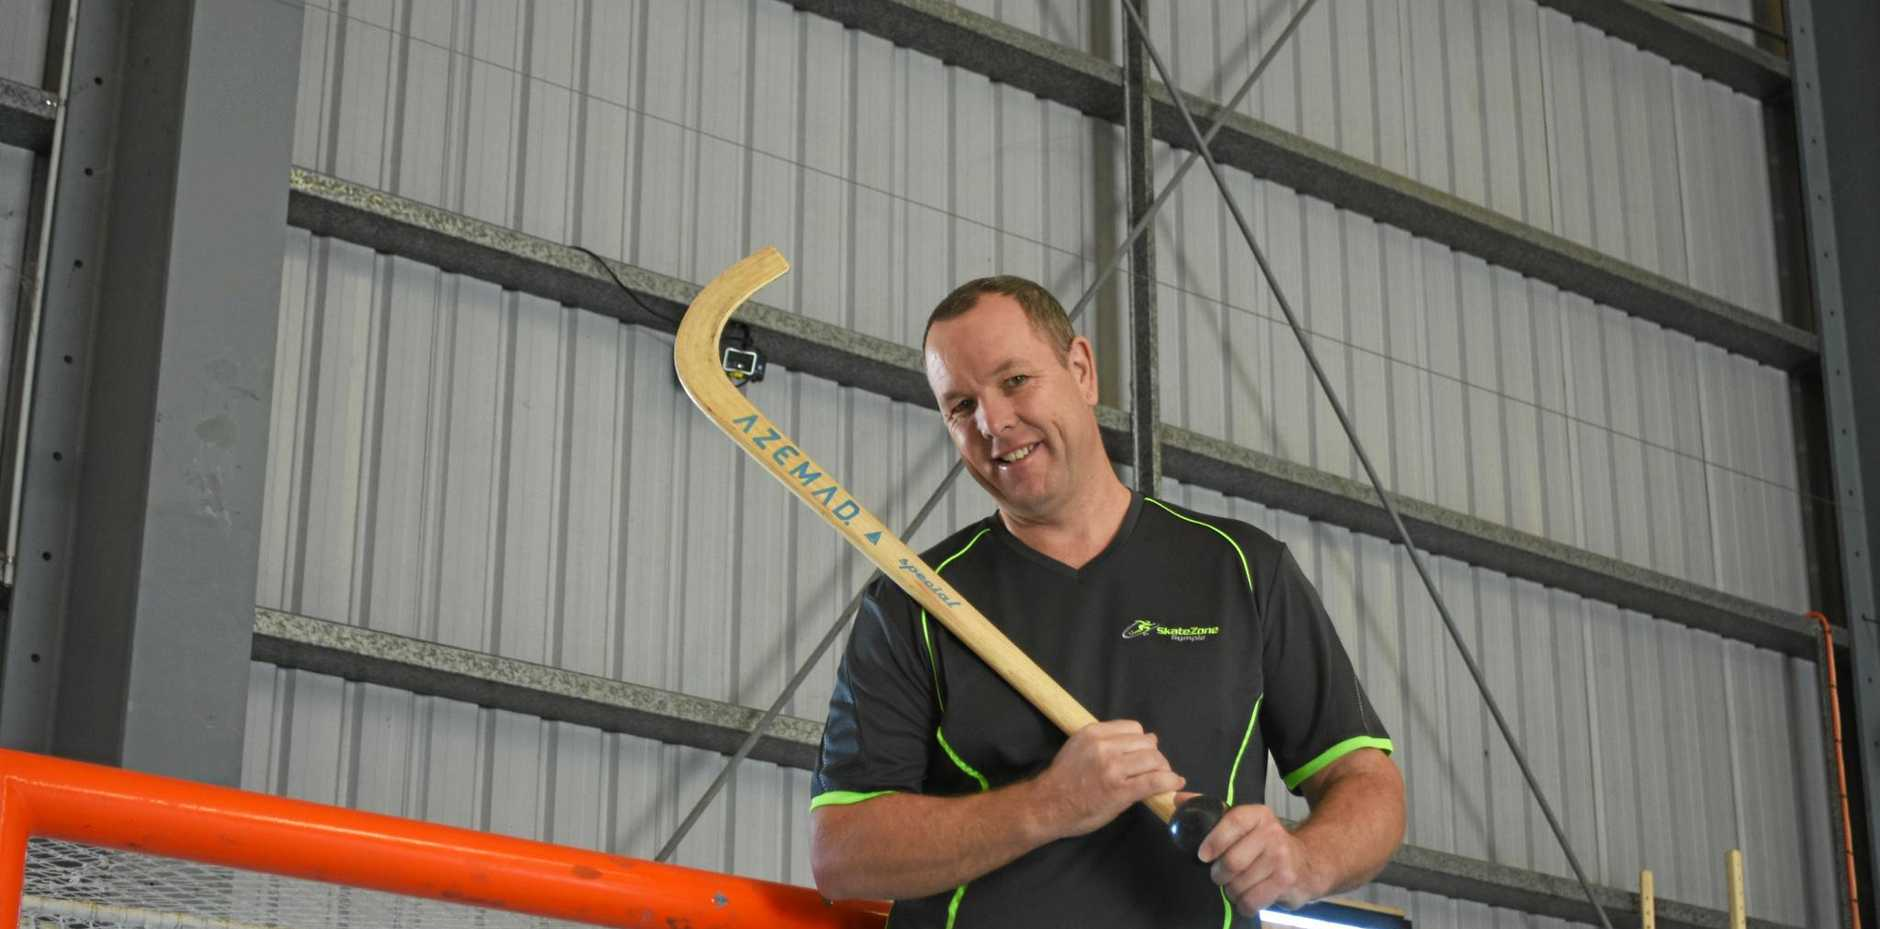 HOST: SkateZone's Darren Nyberg is excited to host an international roller-hockey event in Gympie on Saturday.